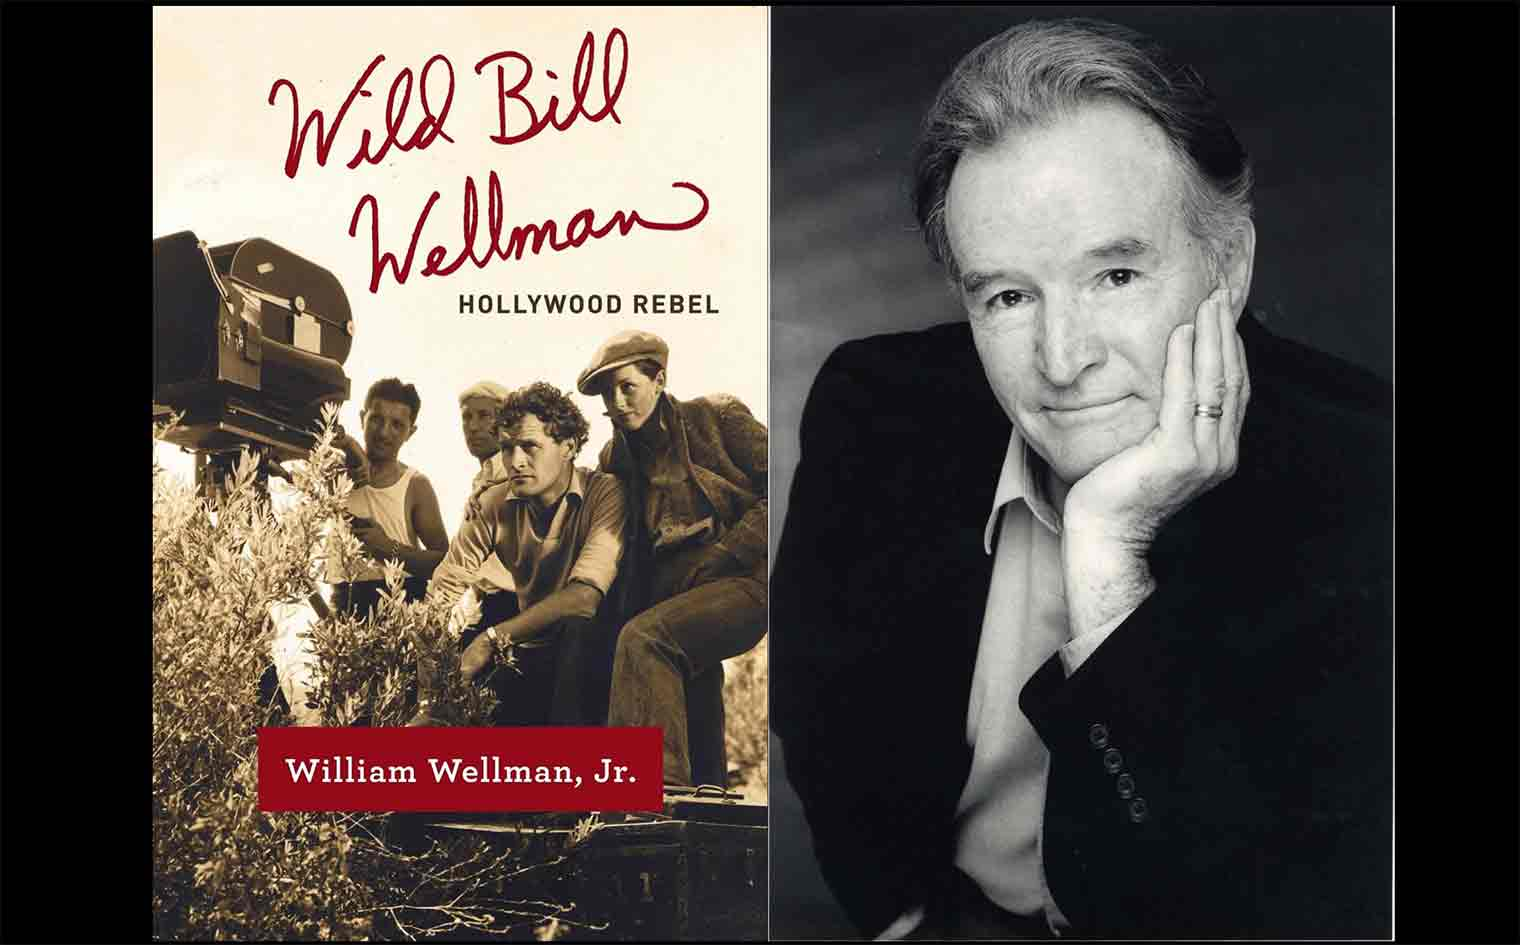 BEGGARS OF LIFE introduced by William Wellman, Jr.